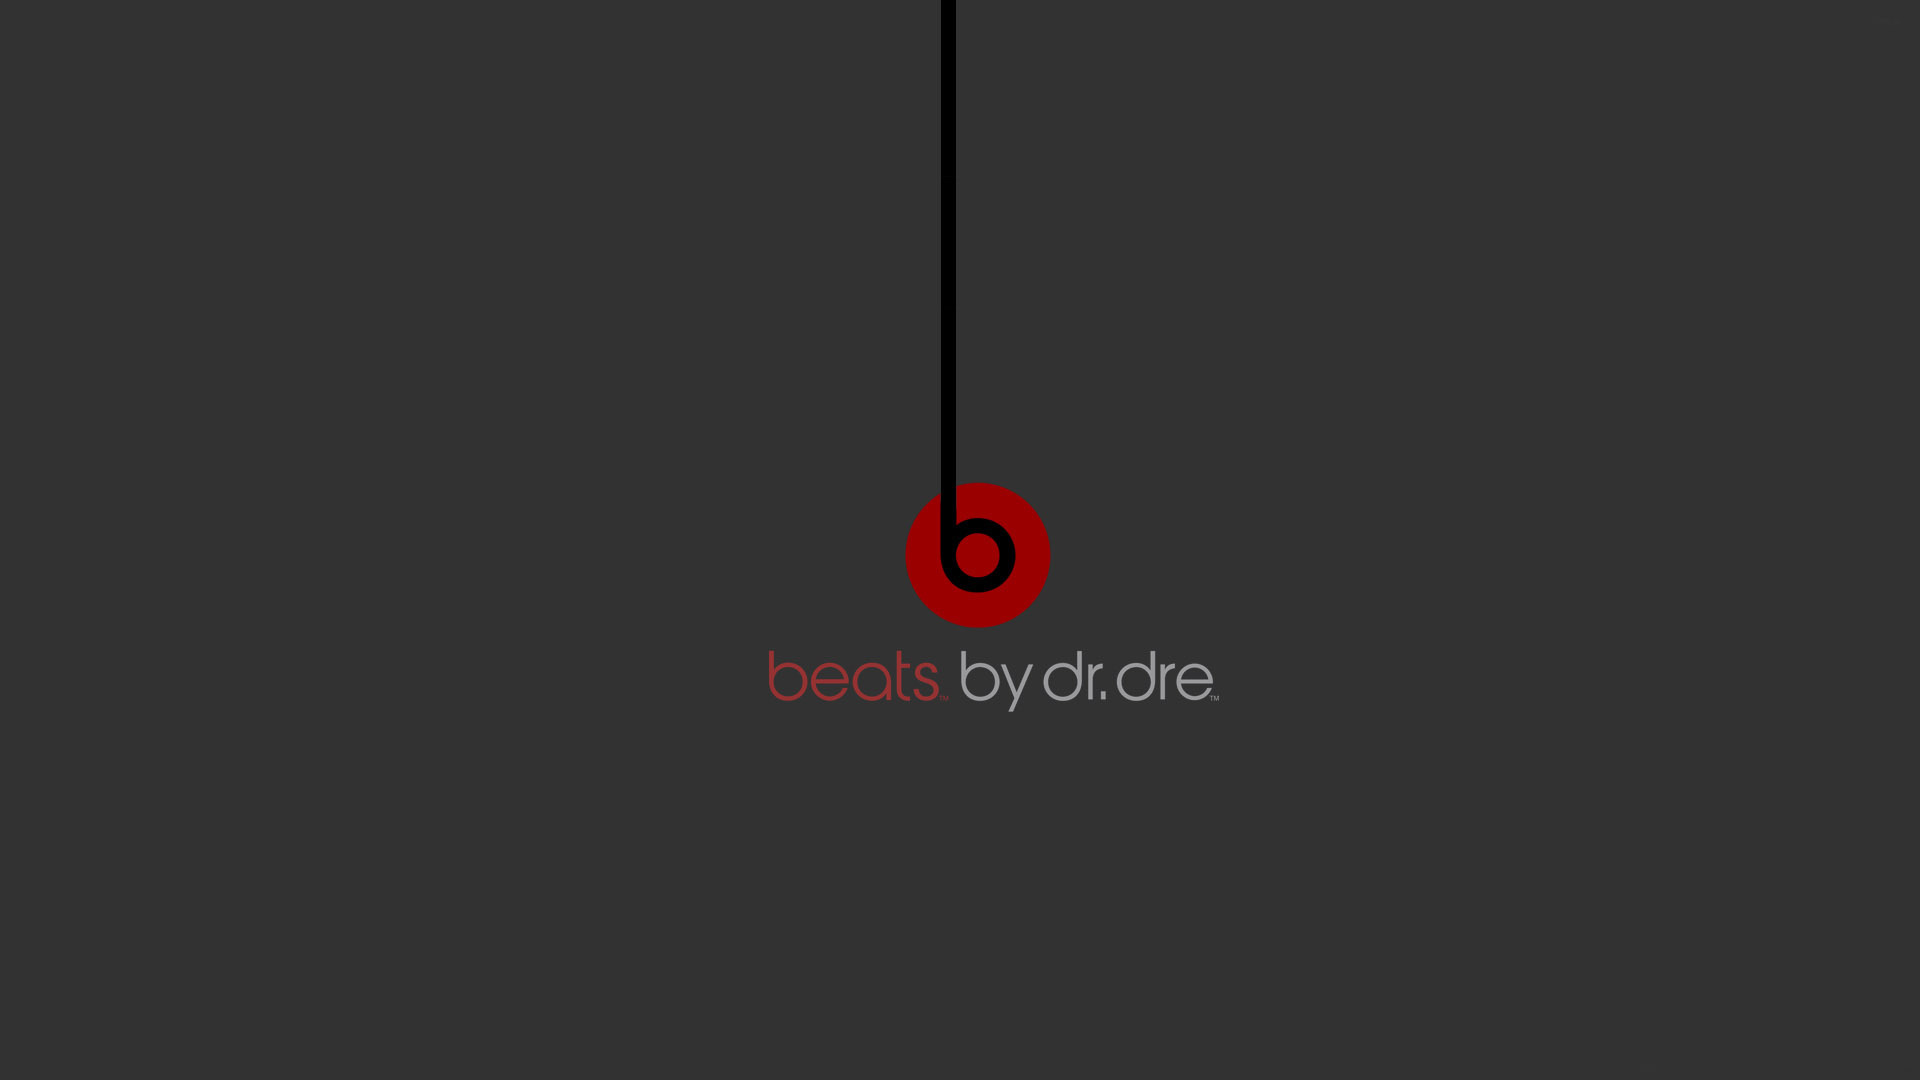 beats audio wallpaper 59171